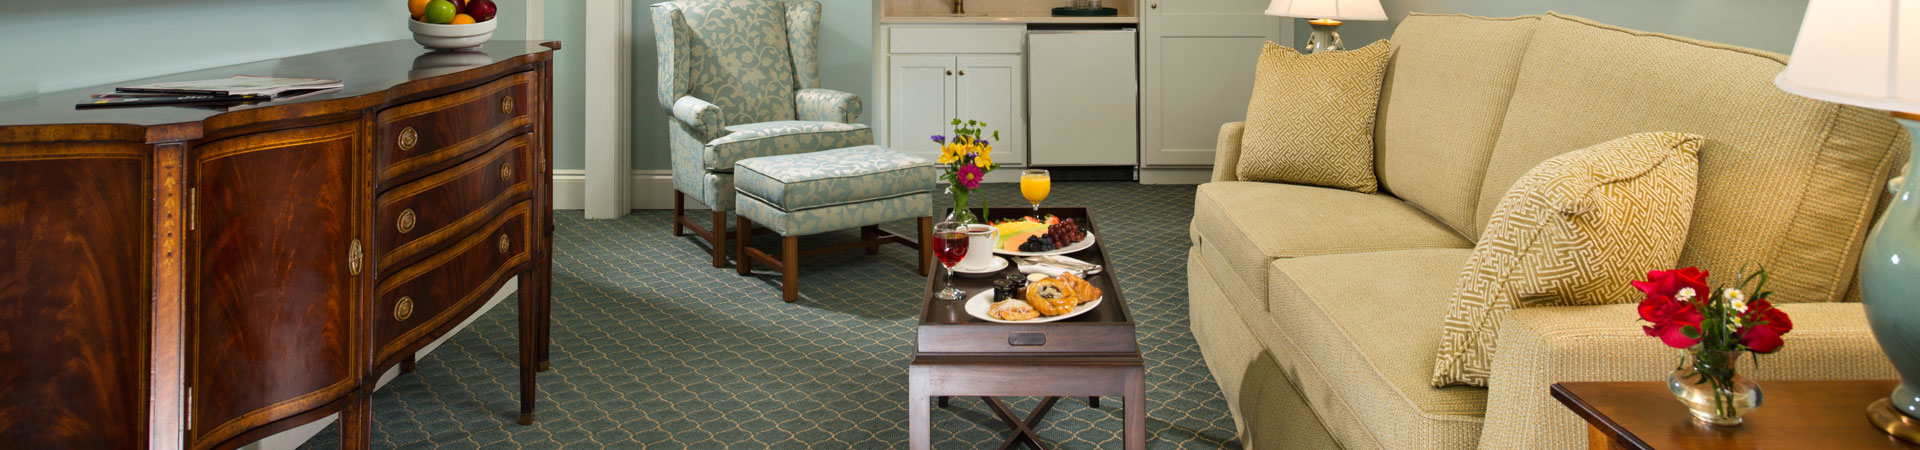 Rooms at The Otesaga Resort Hotel Cooperstown, New York Top